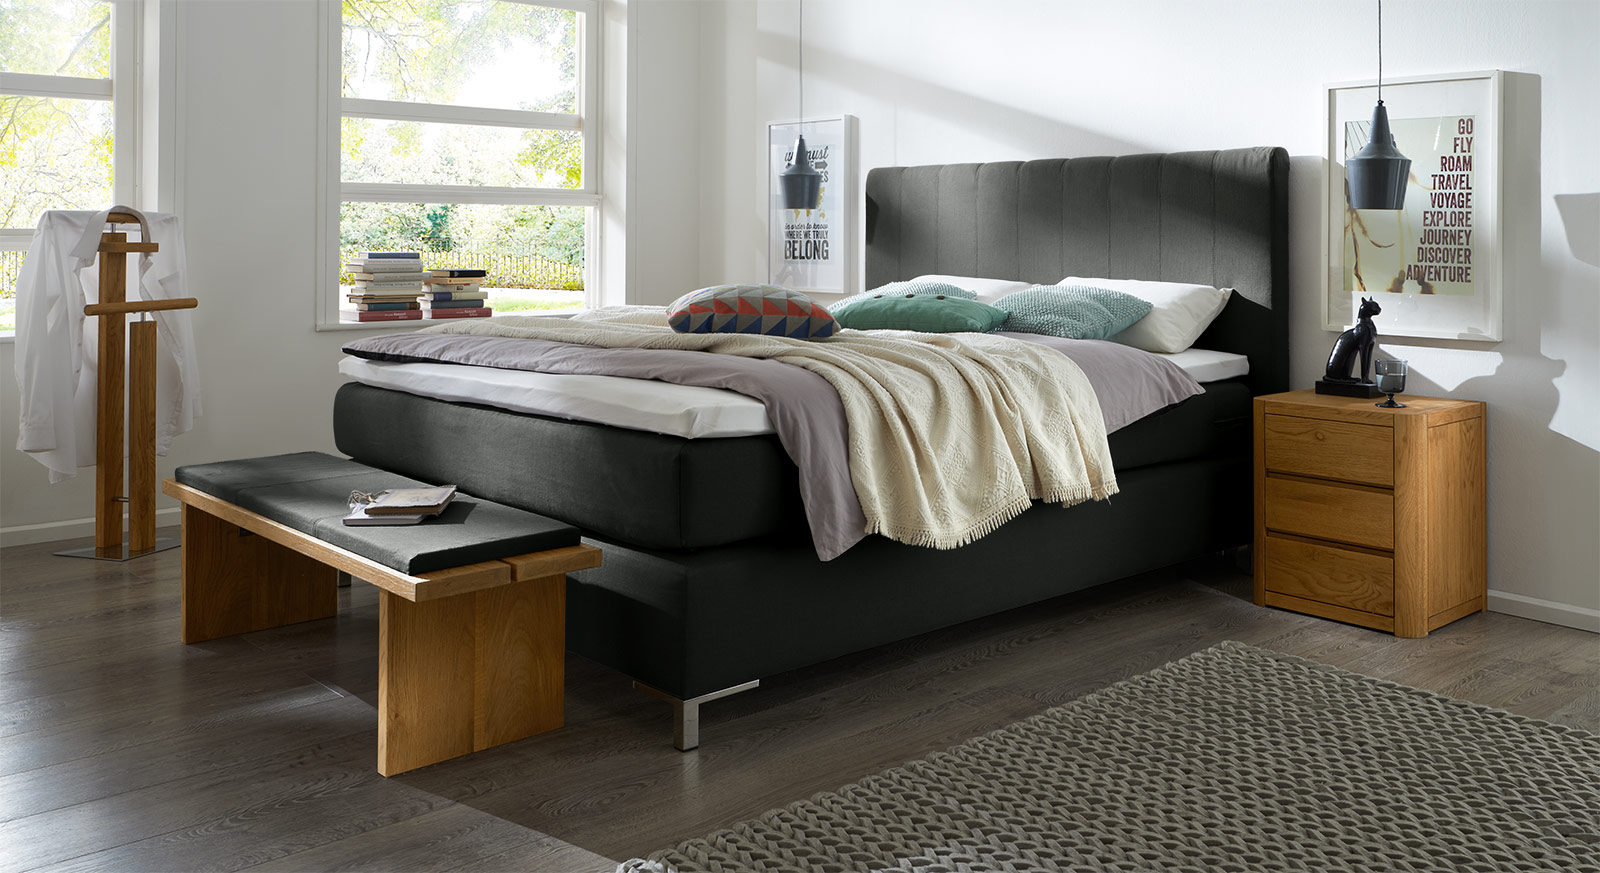 boxspringbett in z b 200x220 cm g nstig kaufen paguera. Black Bedroom Furniture Sets. Home Design Ideas